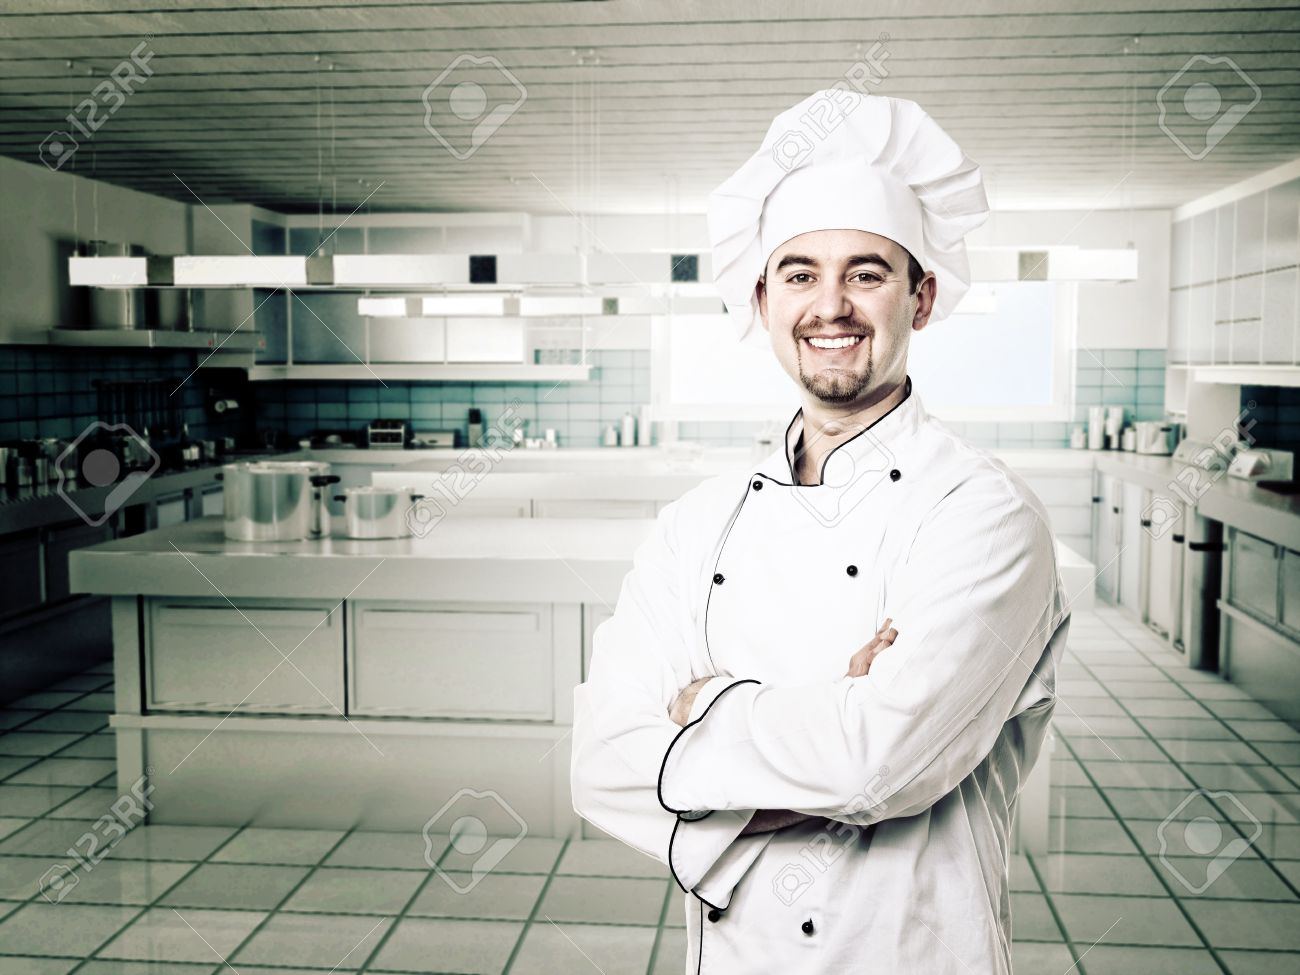 Chef Portrait And Moden Kitchen Background Stock Photo, Picture And ...